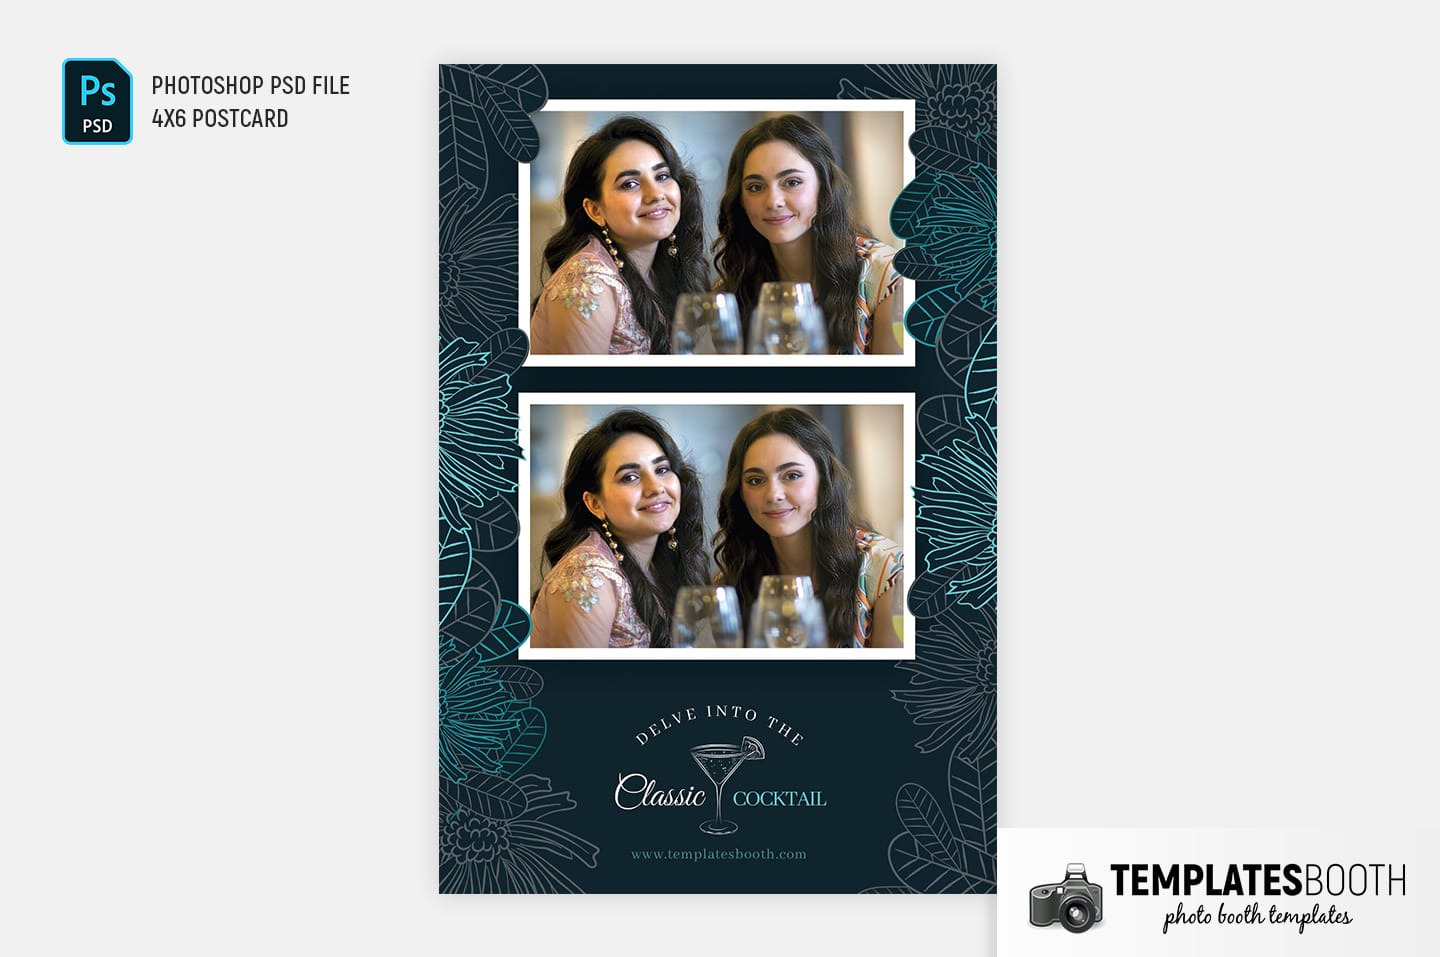 Cocktail Bar Photo Booth Template (4x6 postcard portrait)